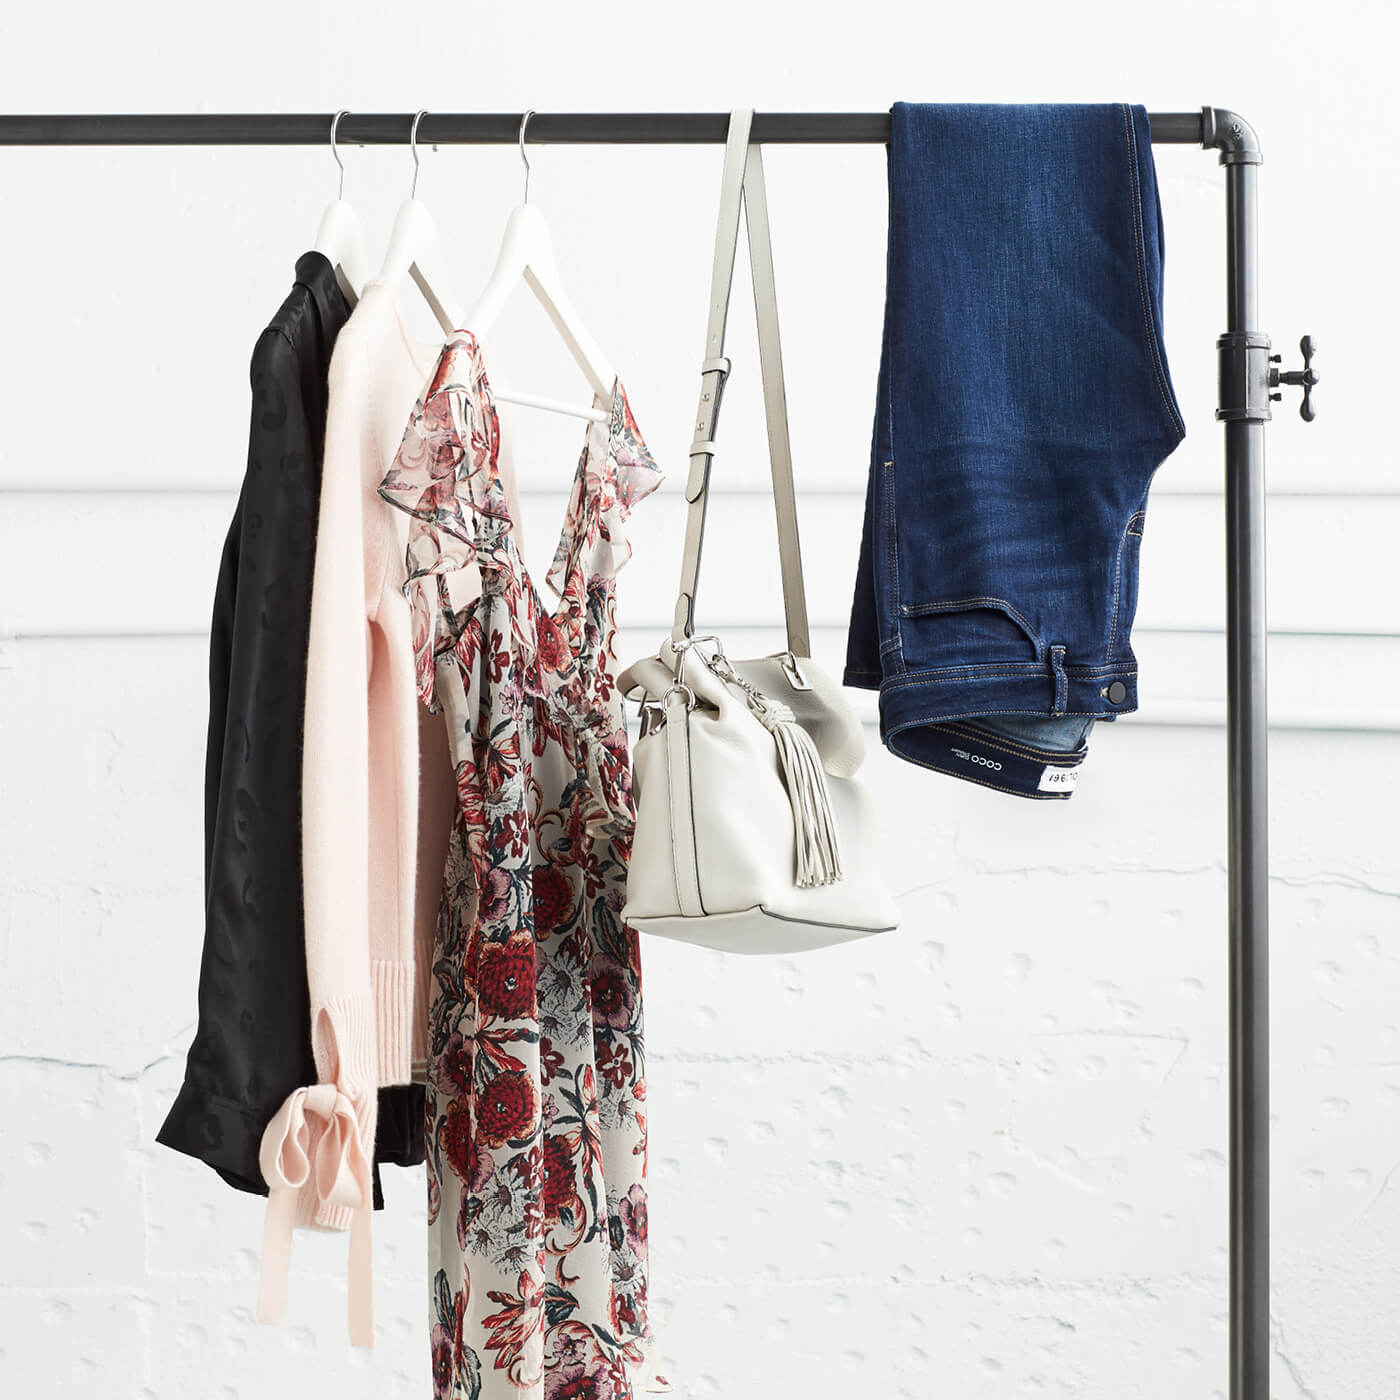 How to clean out your closet stitch fix style - Cleaning out your closet ...